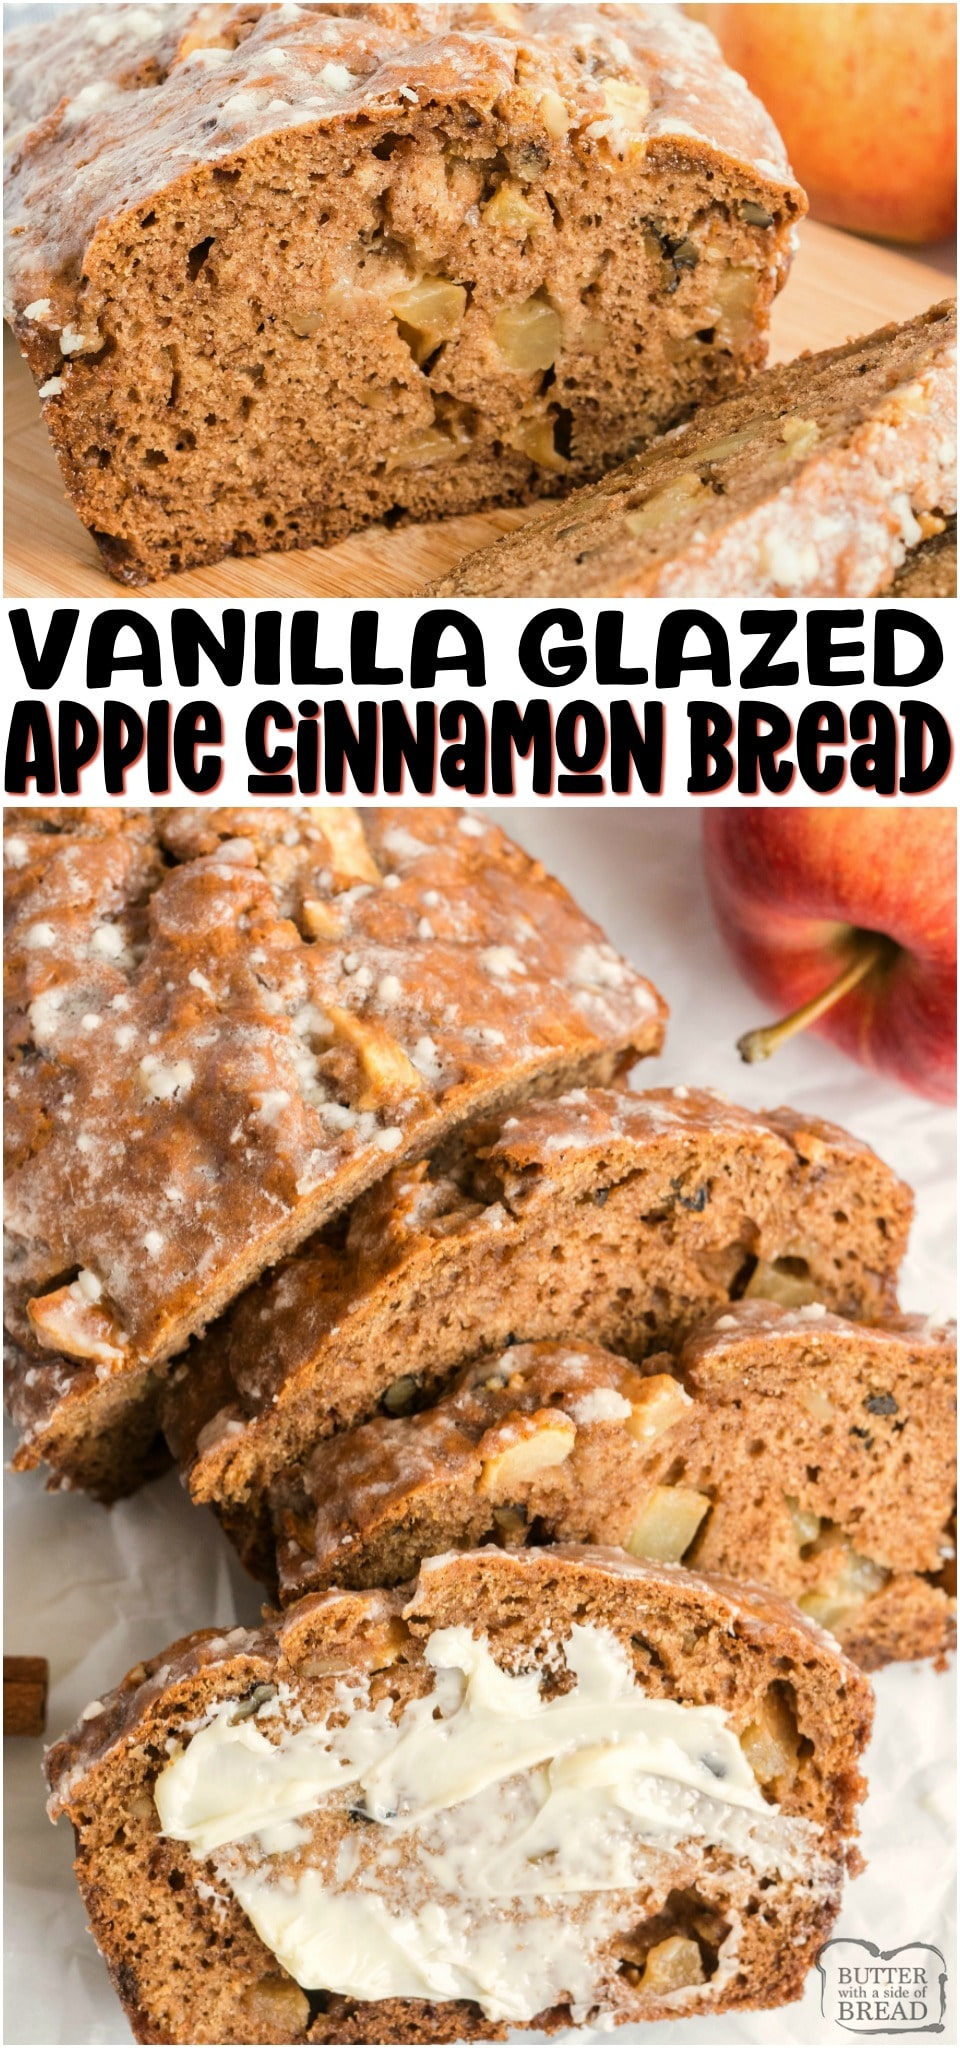 Glazed Apple Cinnamon bread made with fresh apple, cinnamon & brown sugar, then topped with a simple vanilla glaze. Easy quick bread recipe with fantastic apple cinnamon flavor.#bread #quickbread #baking #apples #applecinnamon #fall #homemade #sweetbread #recipe from BUTTER WITH A SIDE OF BREAD